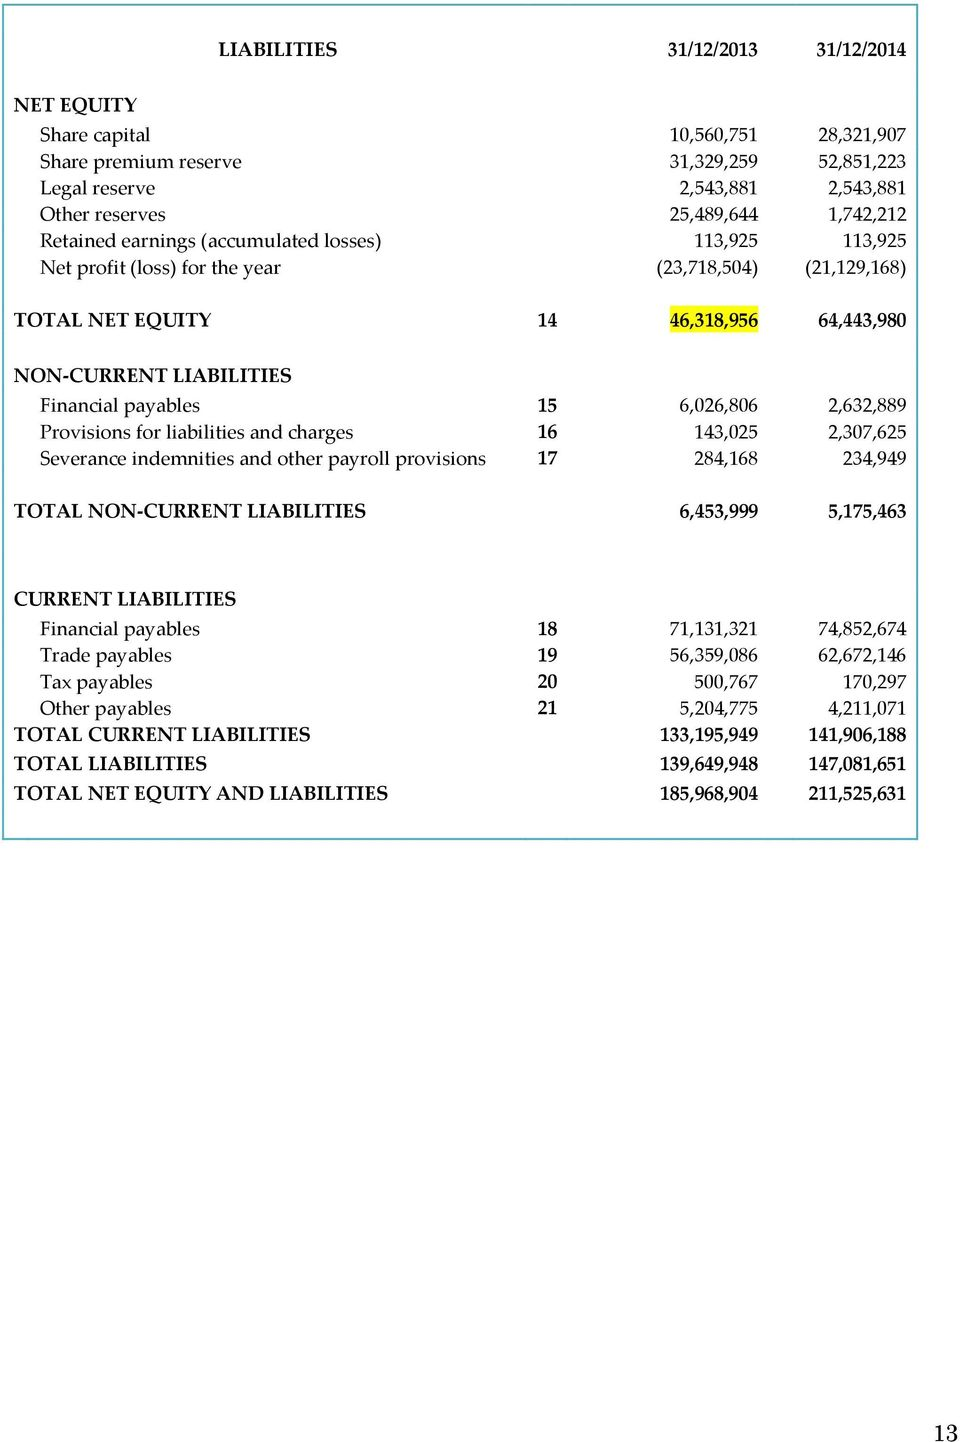 6,026,806 2,632,889 Provisions for liabilities and charges 16 143,025 2,307,625 Severance indemnities and other payroll provisions 17 284,168 234,949 TOTAL NON-CURRENT LIABILITIES 6,453,999 5,175,463